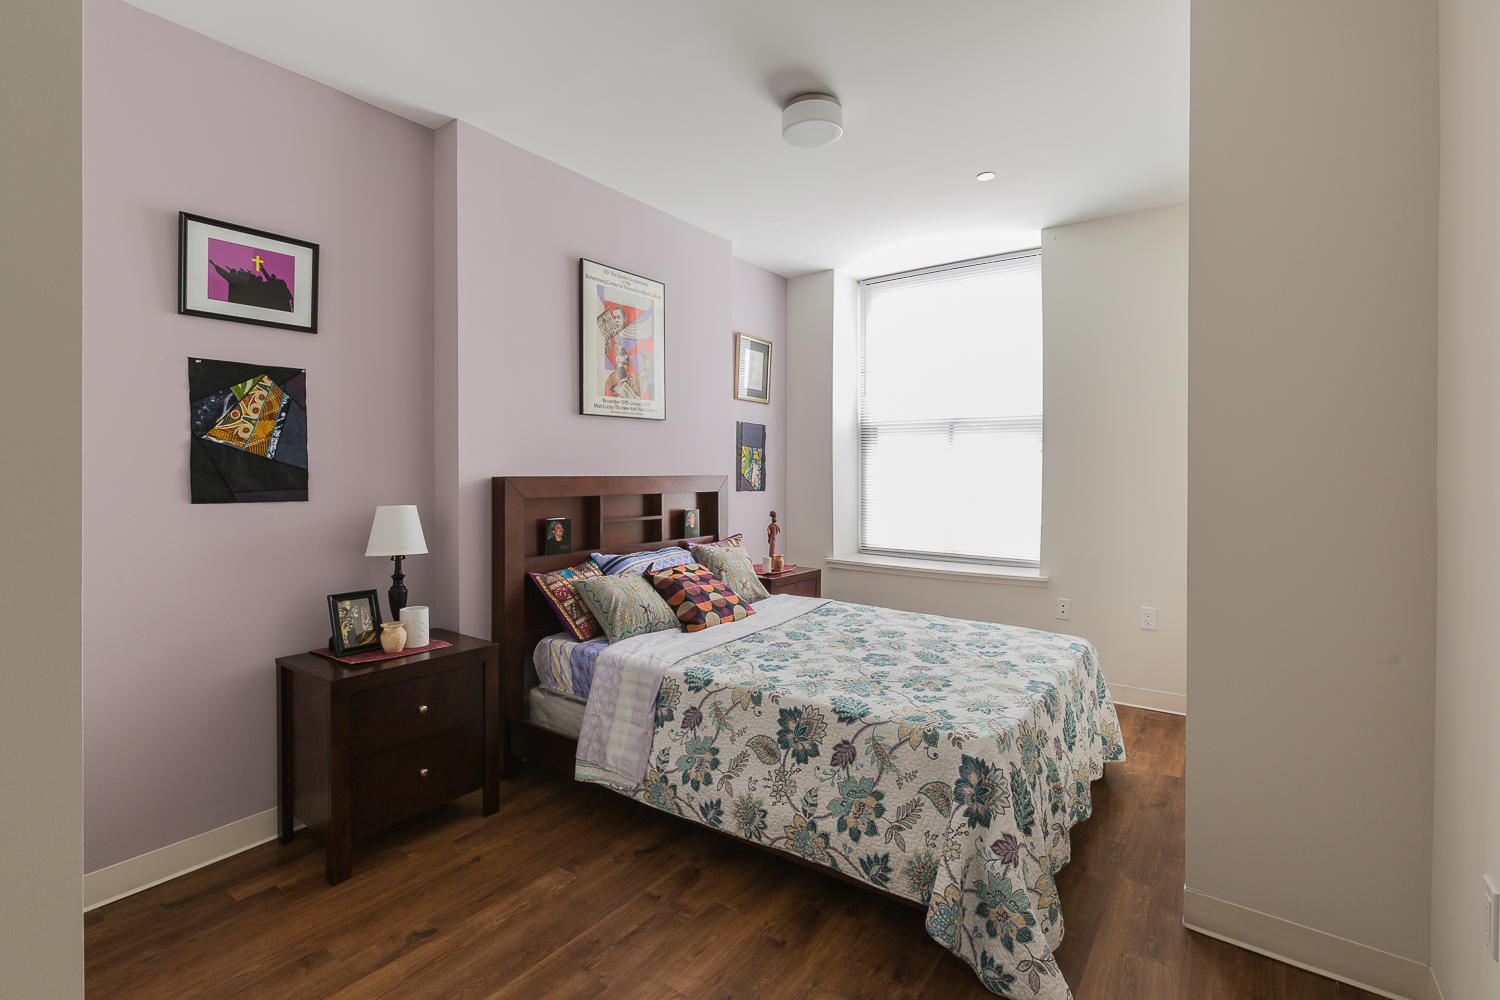 A renovated bedroom at Randolph Houses. photo by Mouhsine Idrissi Janati for Trinity Financial